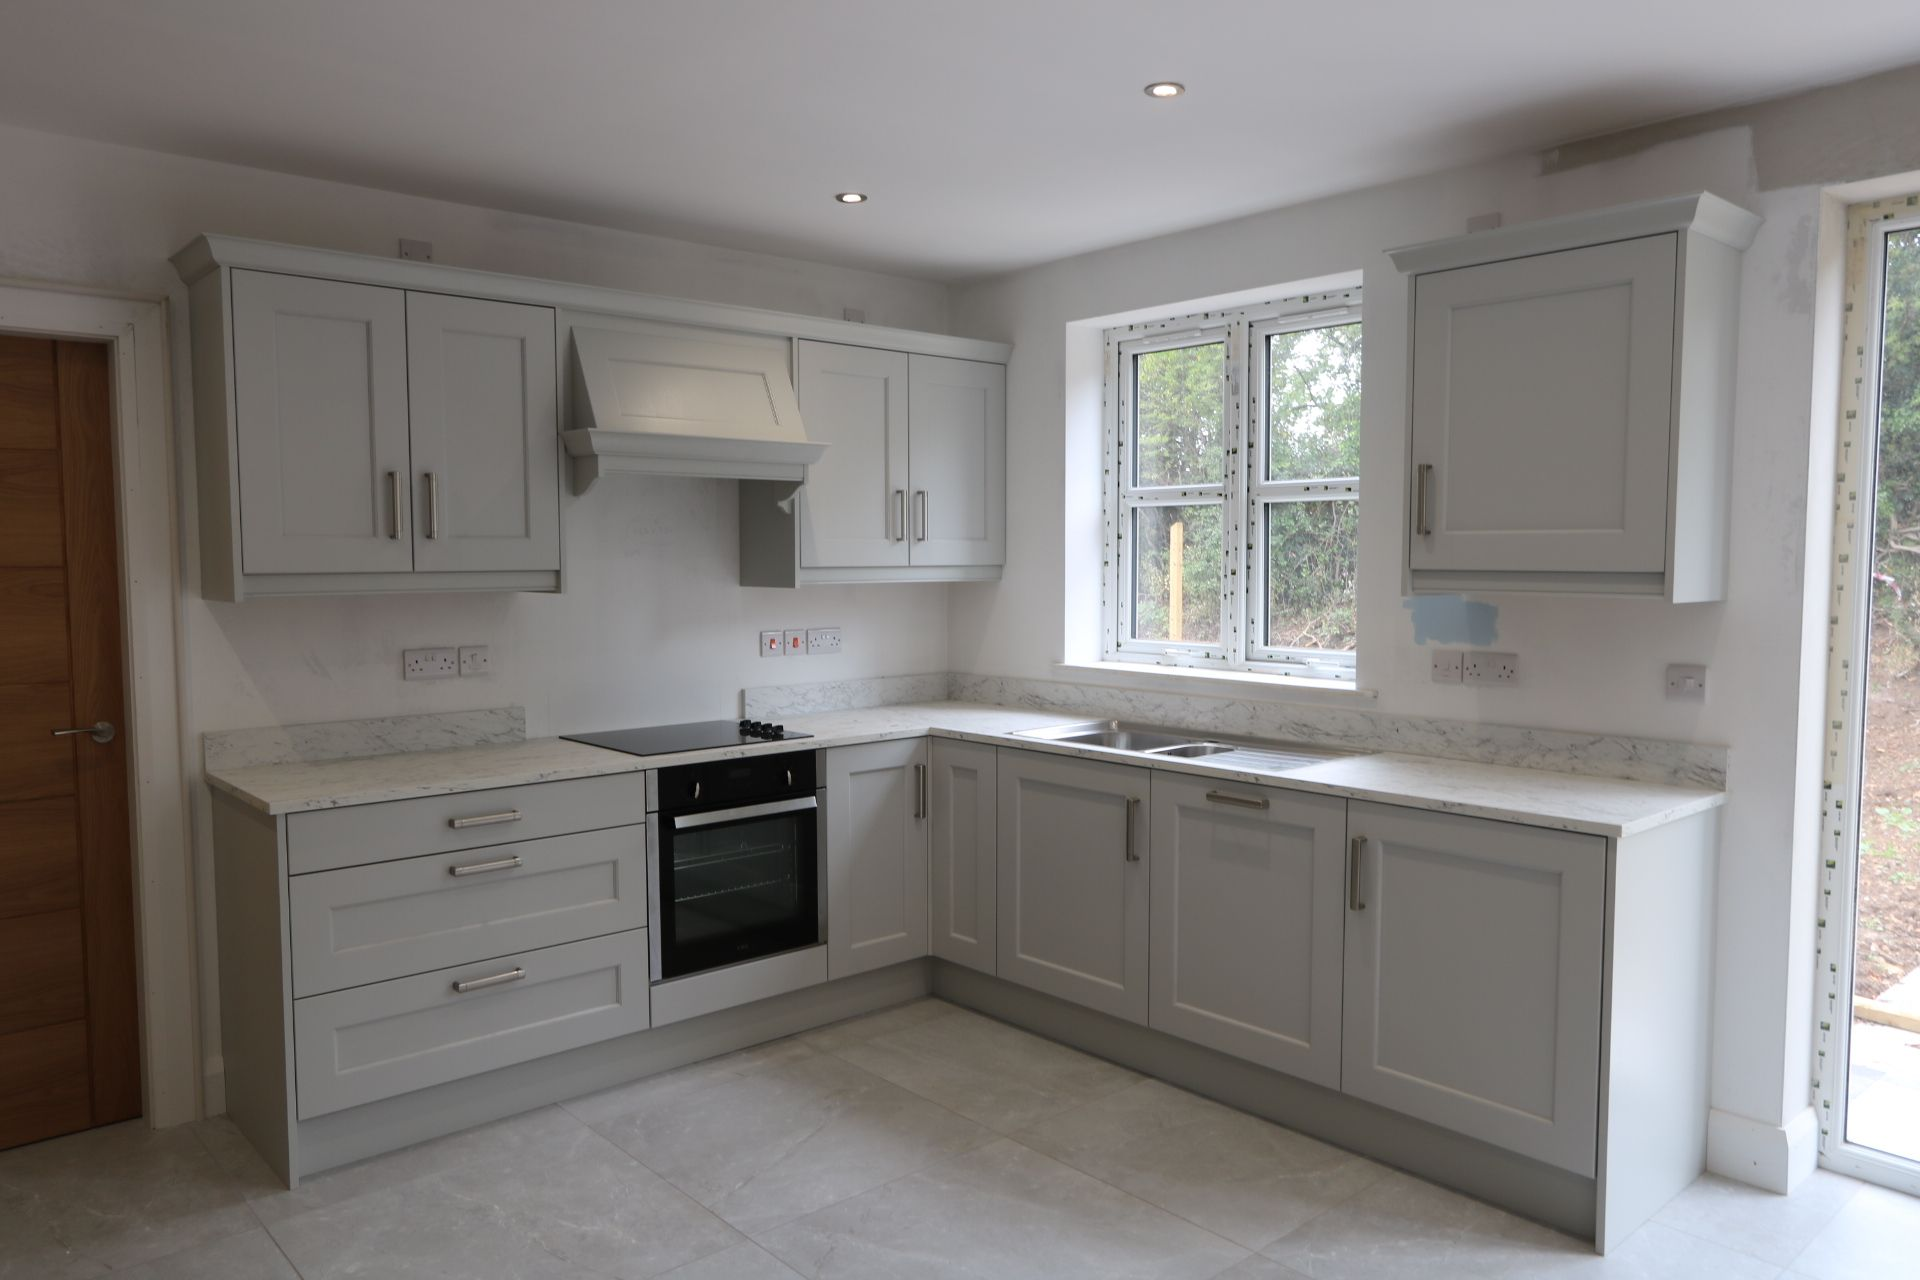 4 bedroom detached house For Sale in Antrim - Photograph 4